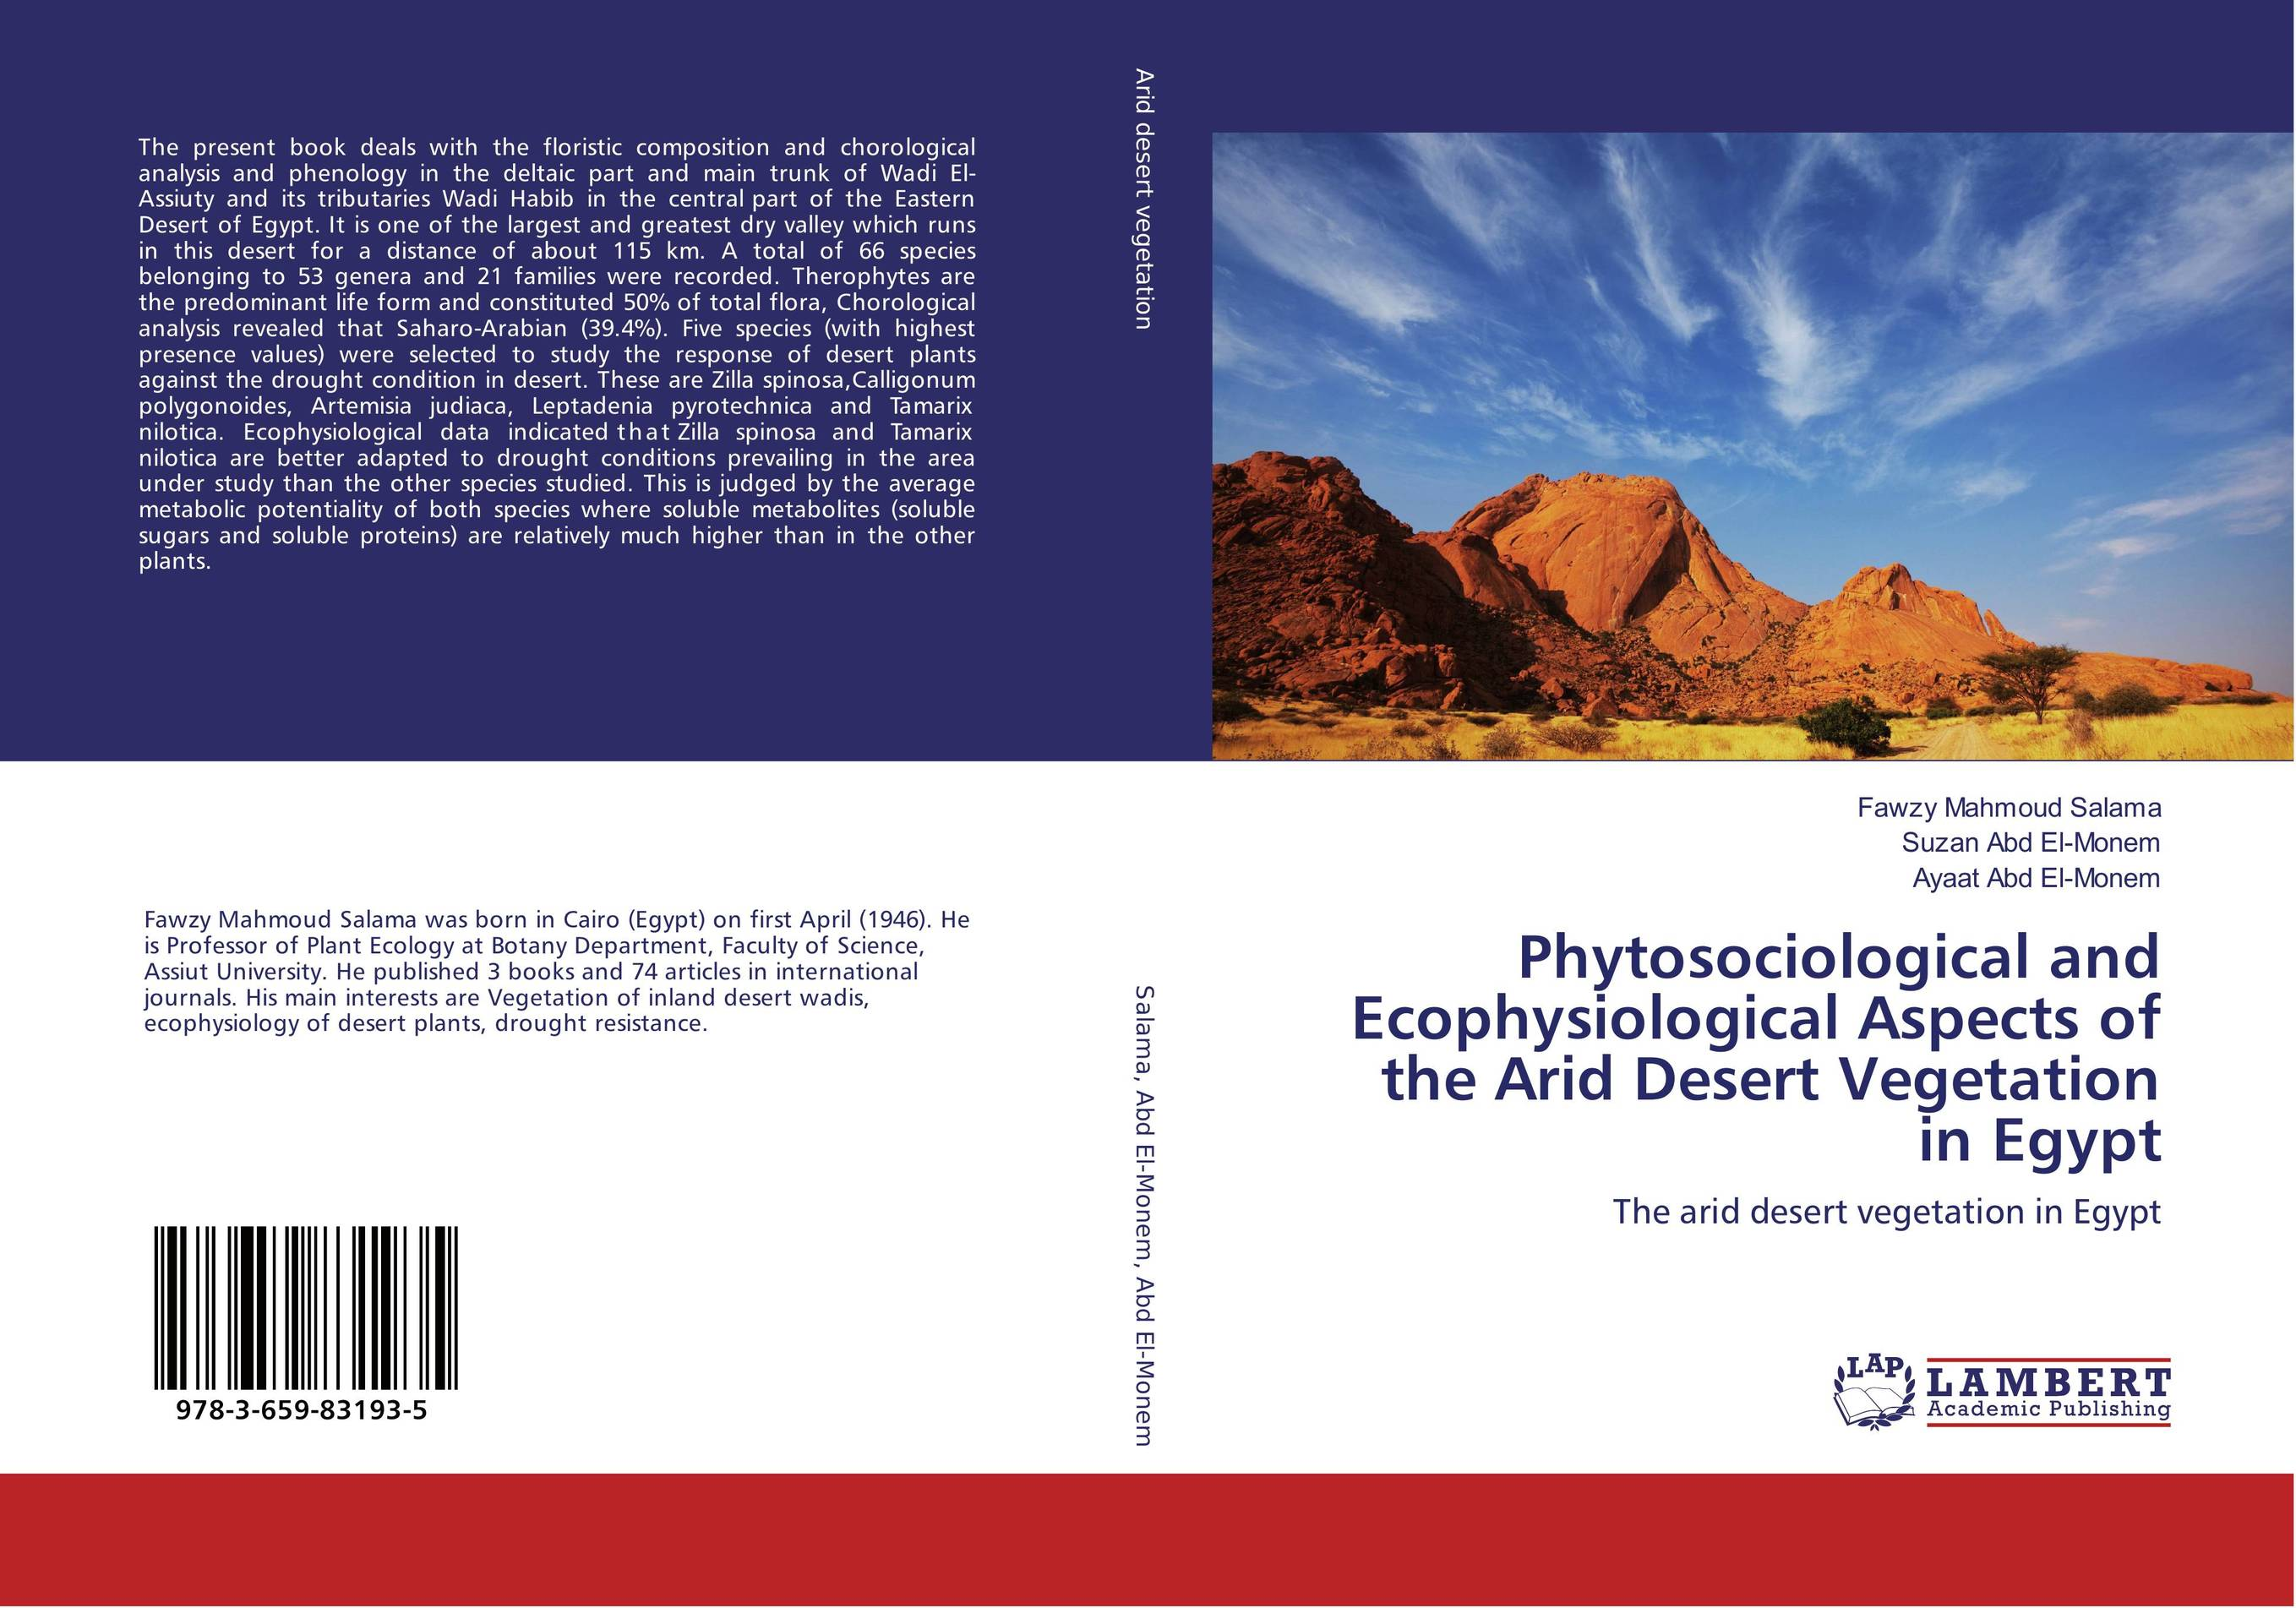 Phytosociological and Ecophysiological Aspects of the Arid Desert Vegetation in Egypt the desert and the blade